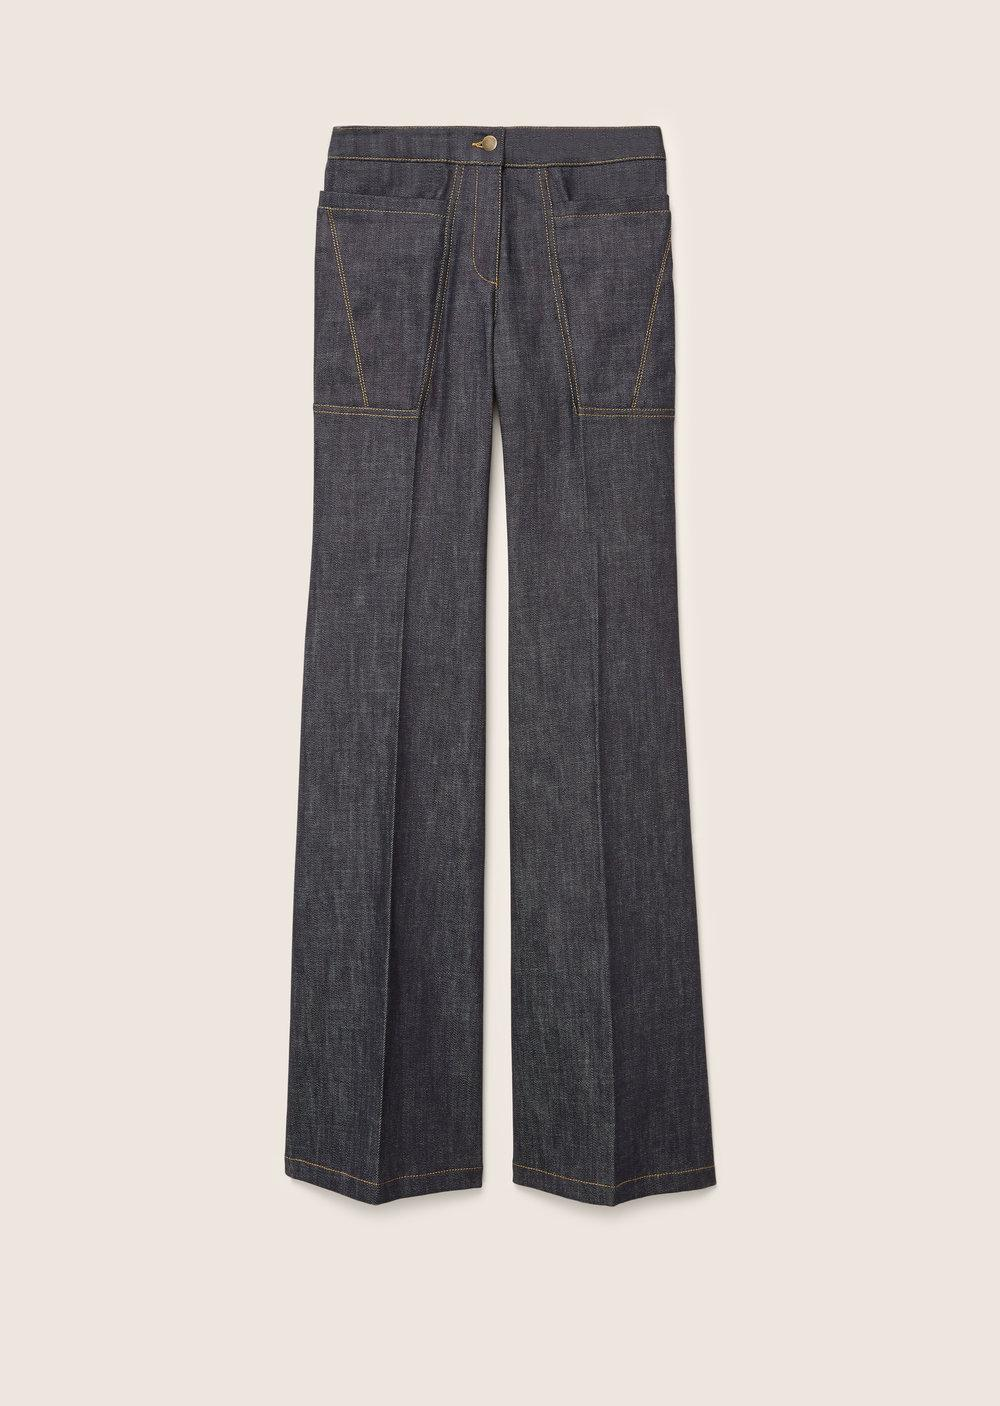 Looking For Cheap Online Charlotte High Waist Flare Jean - Blue Derek Lam Latest For Sale Sale Clearance Buy Cheap Best Place yRtGW6t8qN